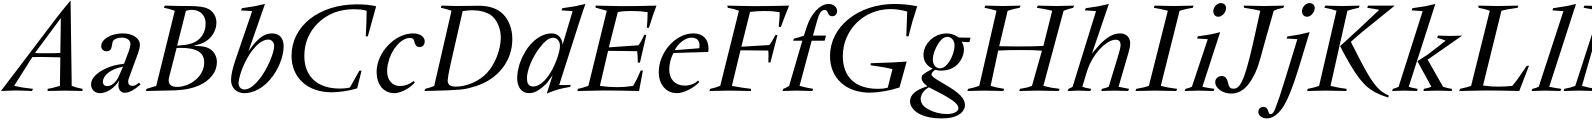 Vendome Regular Italic